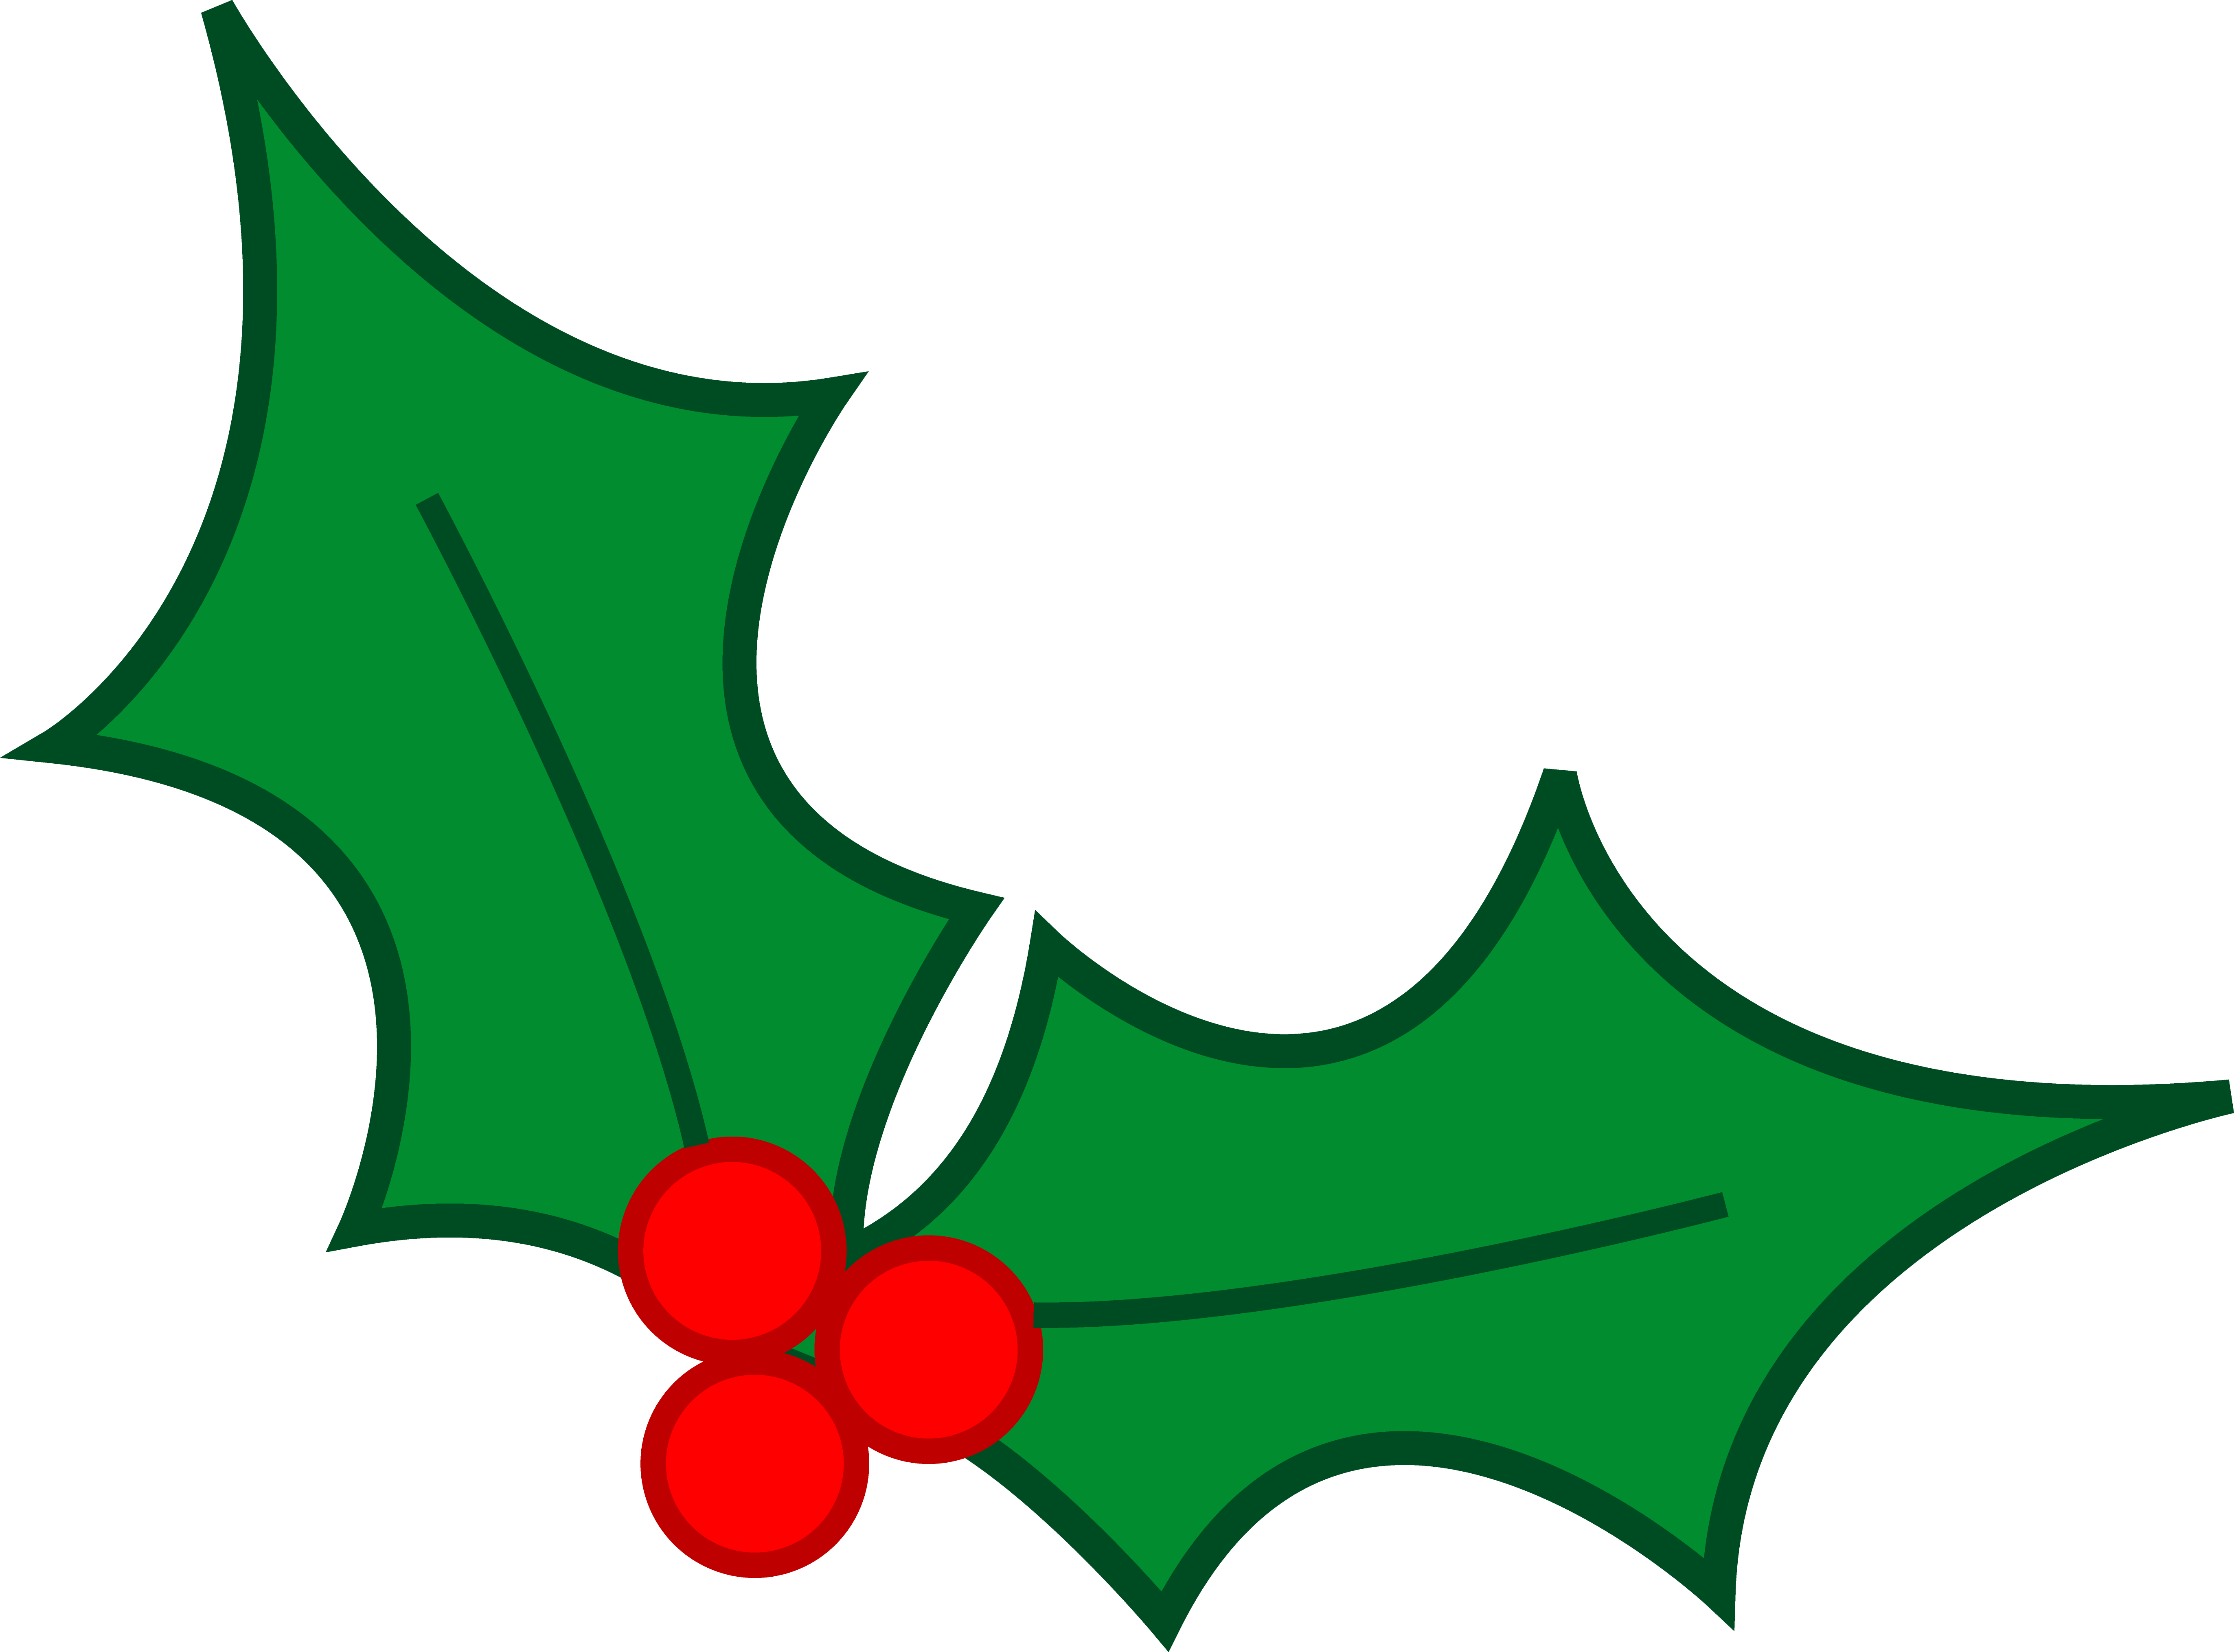 vector Berry clipart christmas. Holly leaves free on.